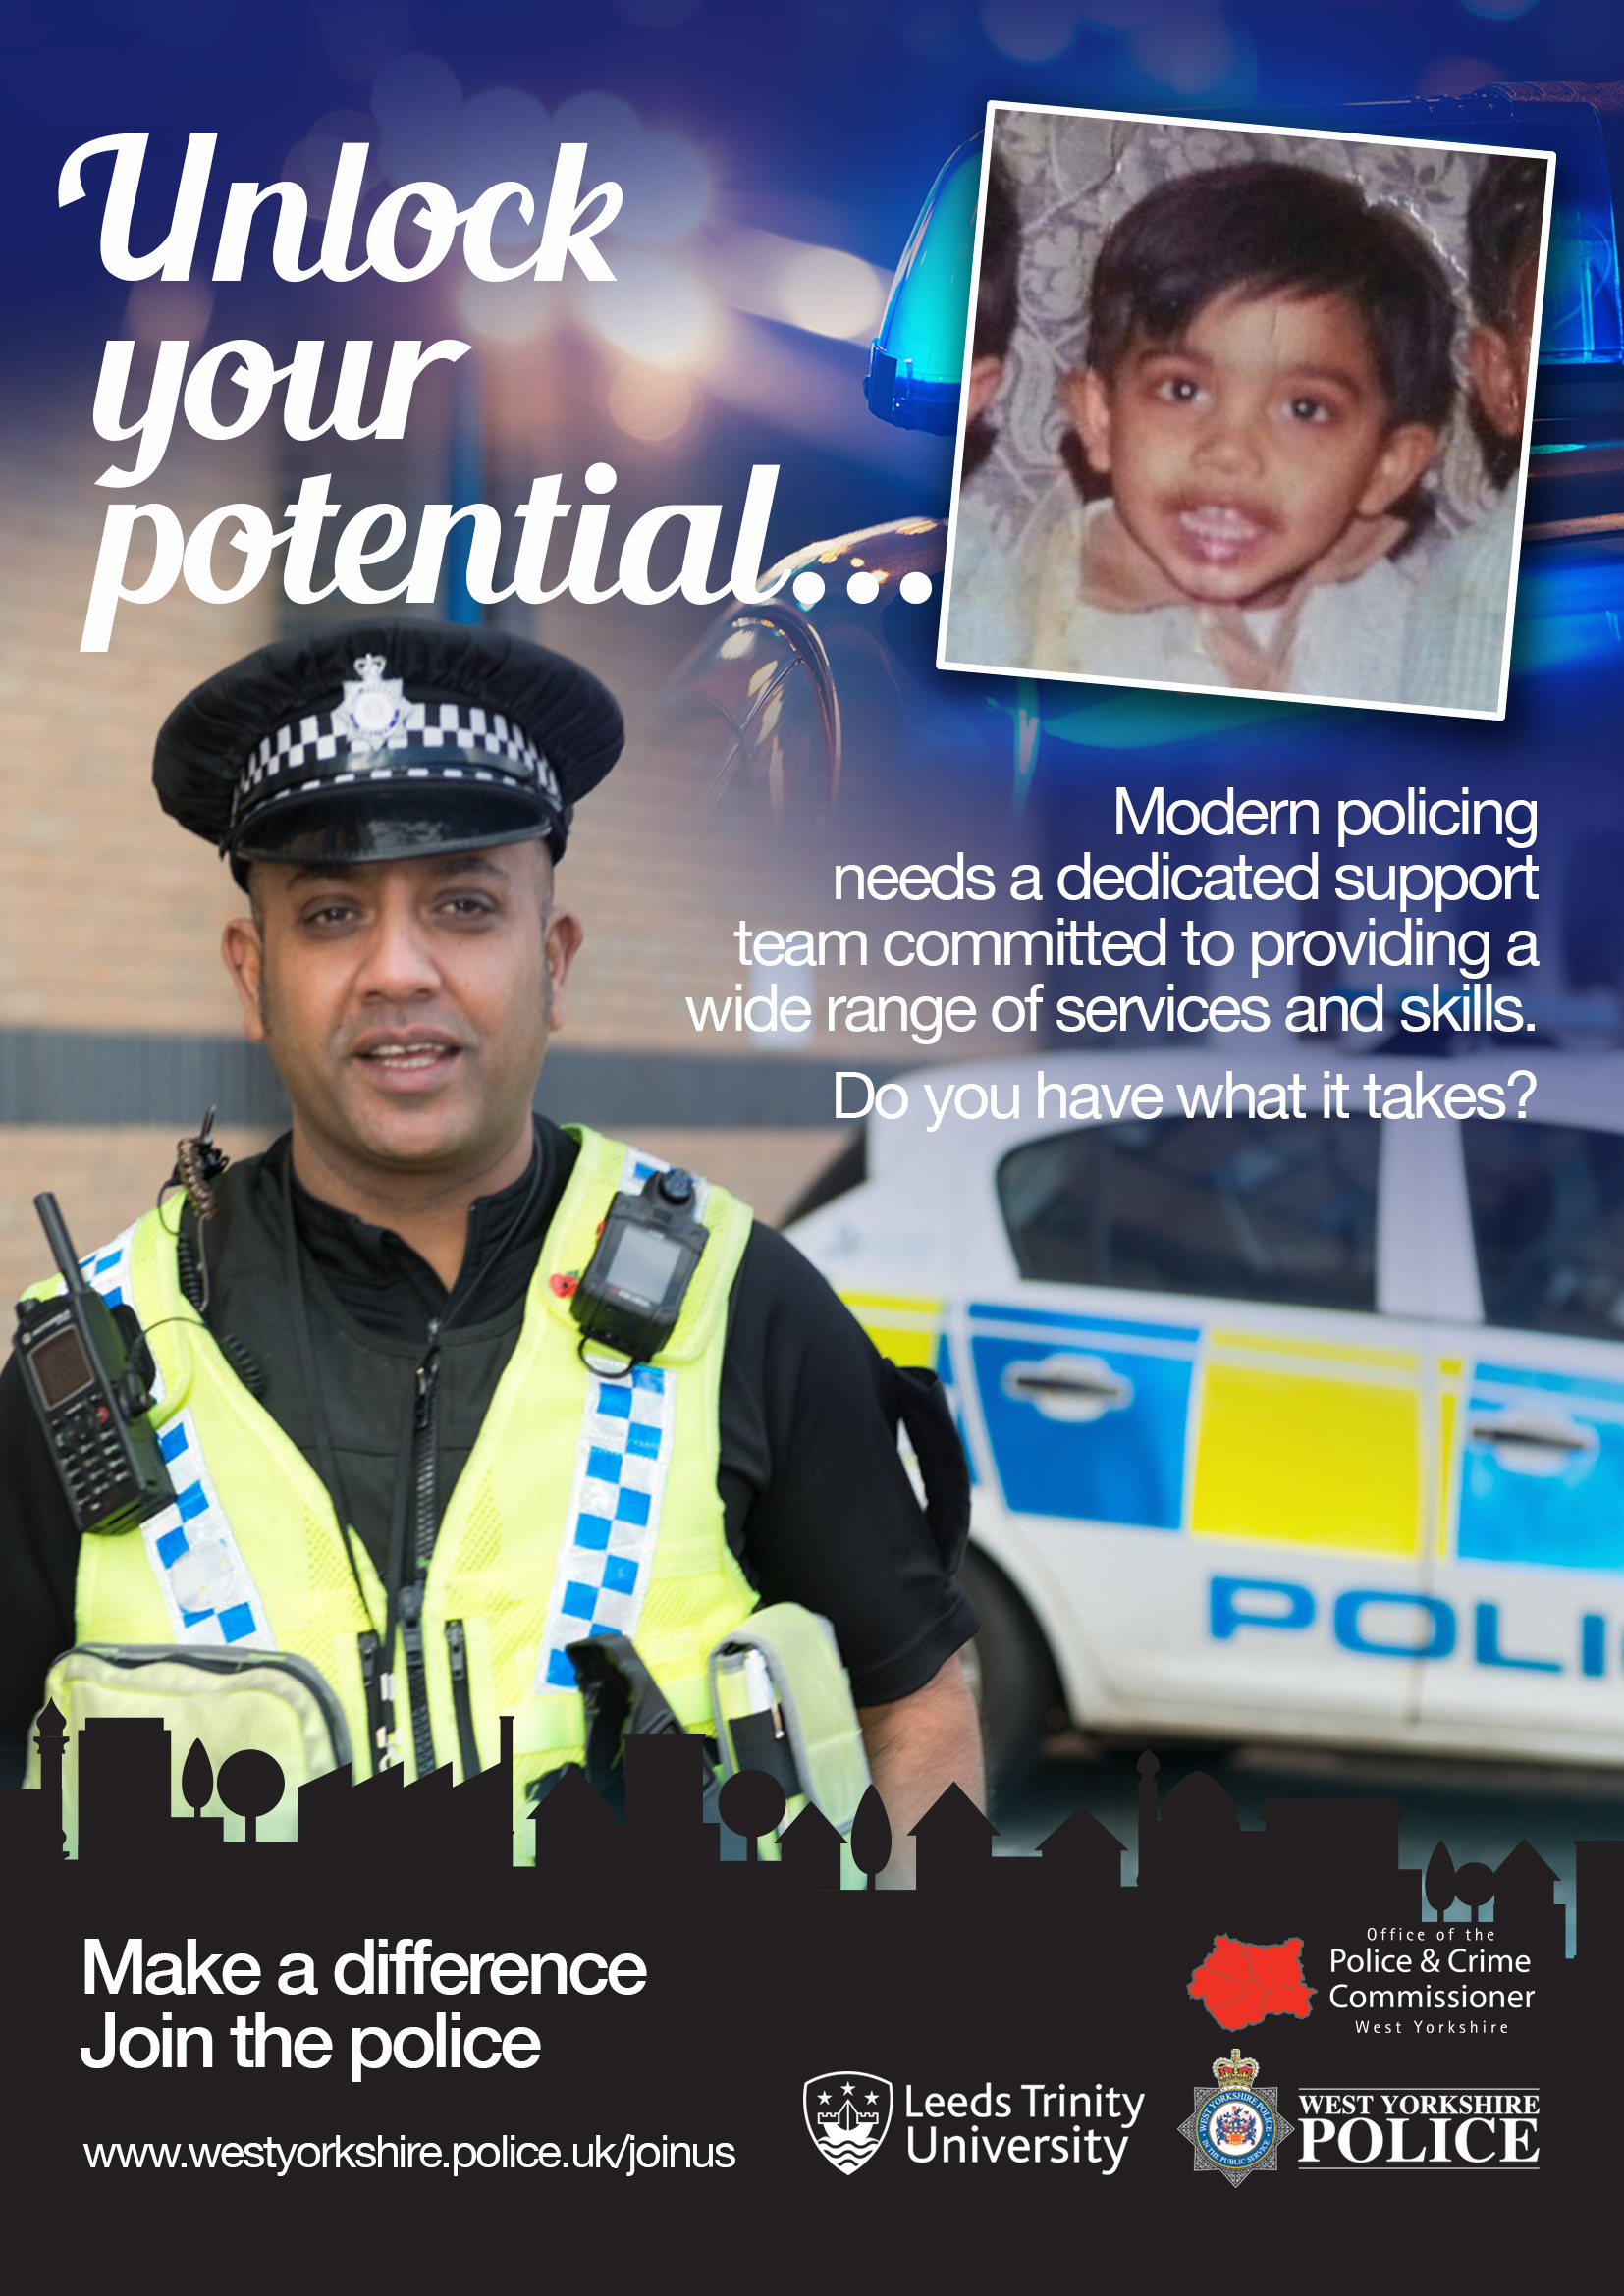 PC Dharmesh Mistry